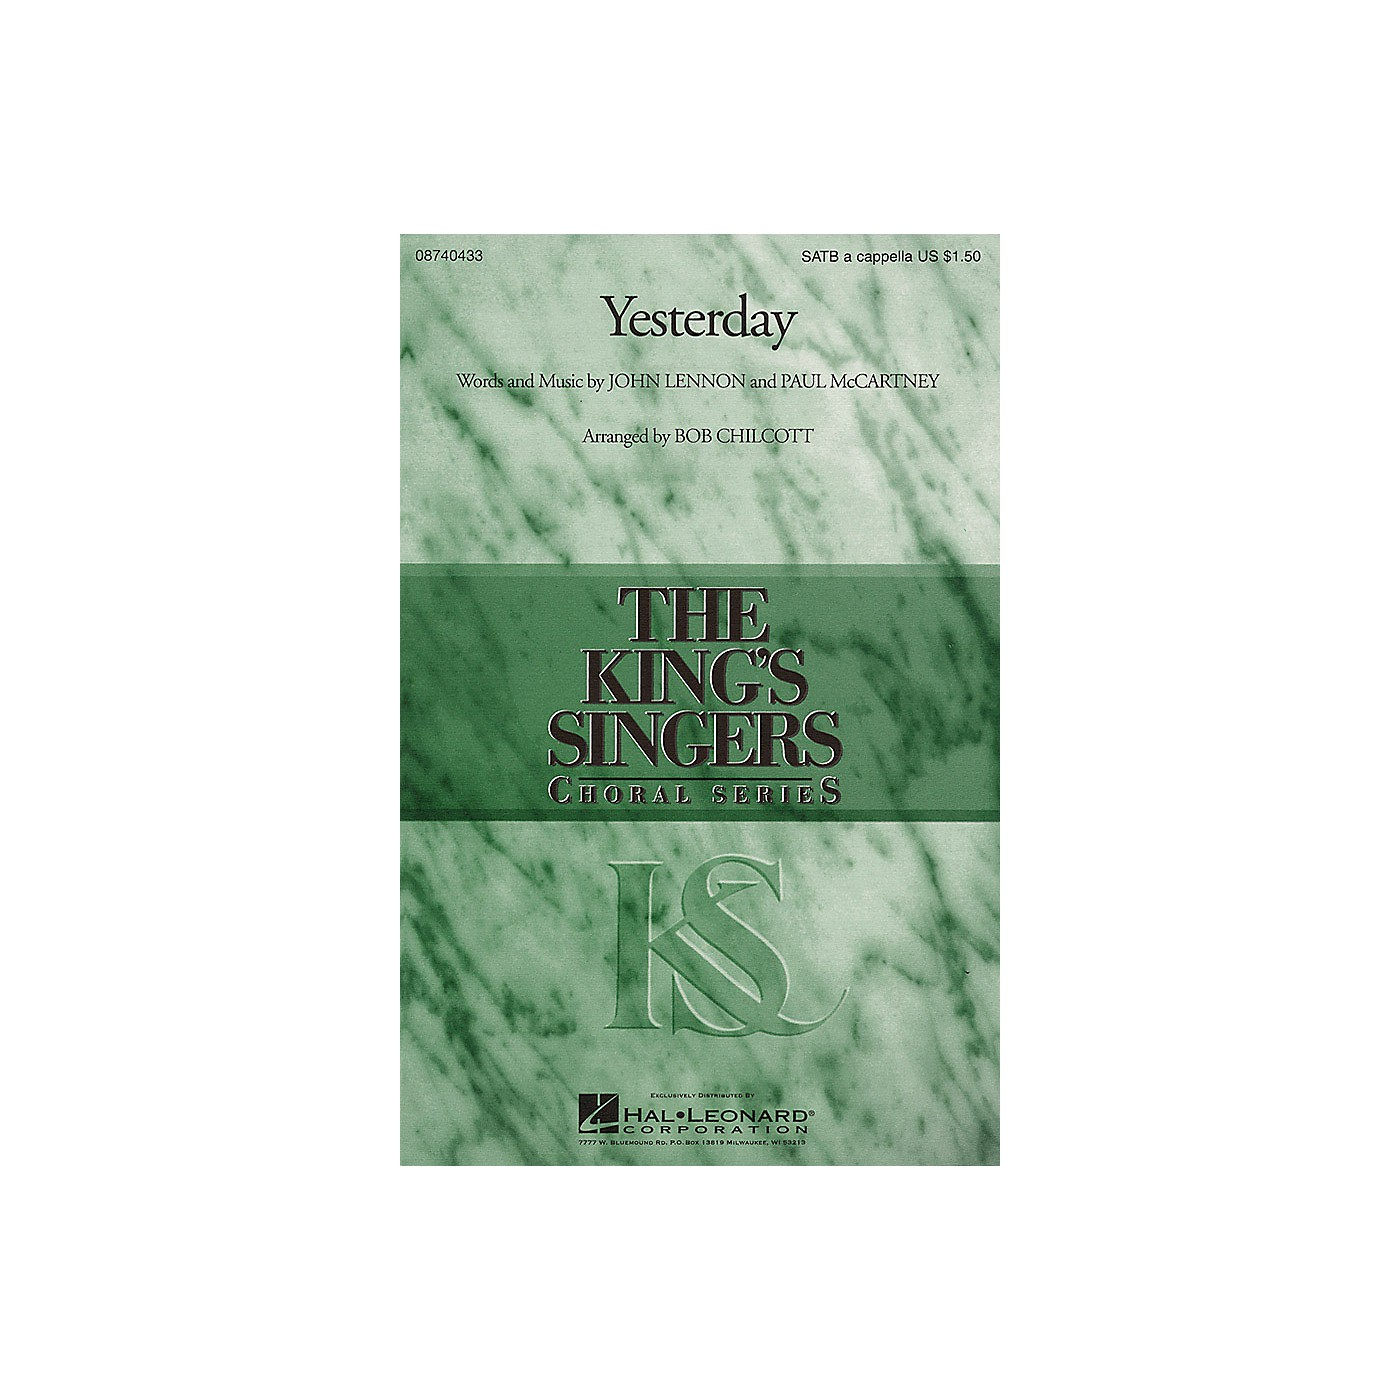 Hal Leonard Yesterday SATB a cappella by The King's Singers arranged by Bob Chilcott thumbnail